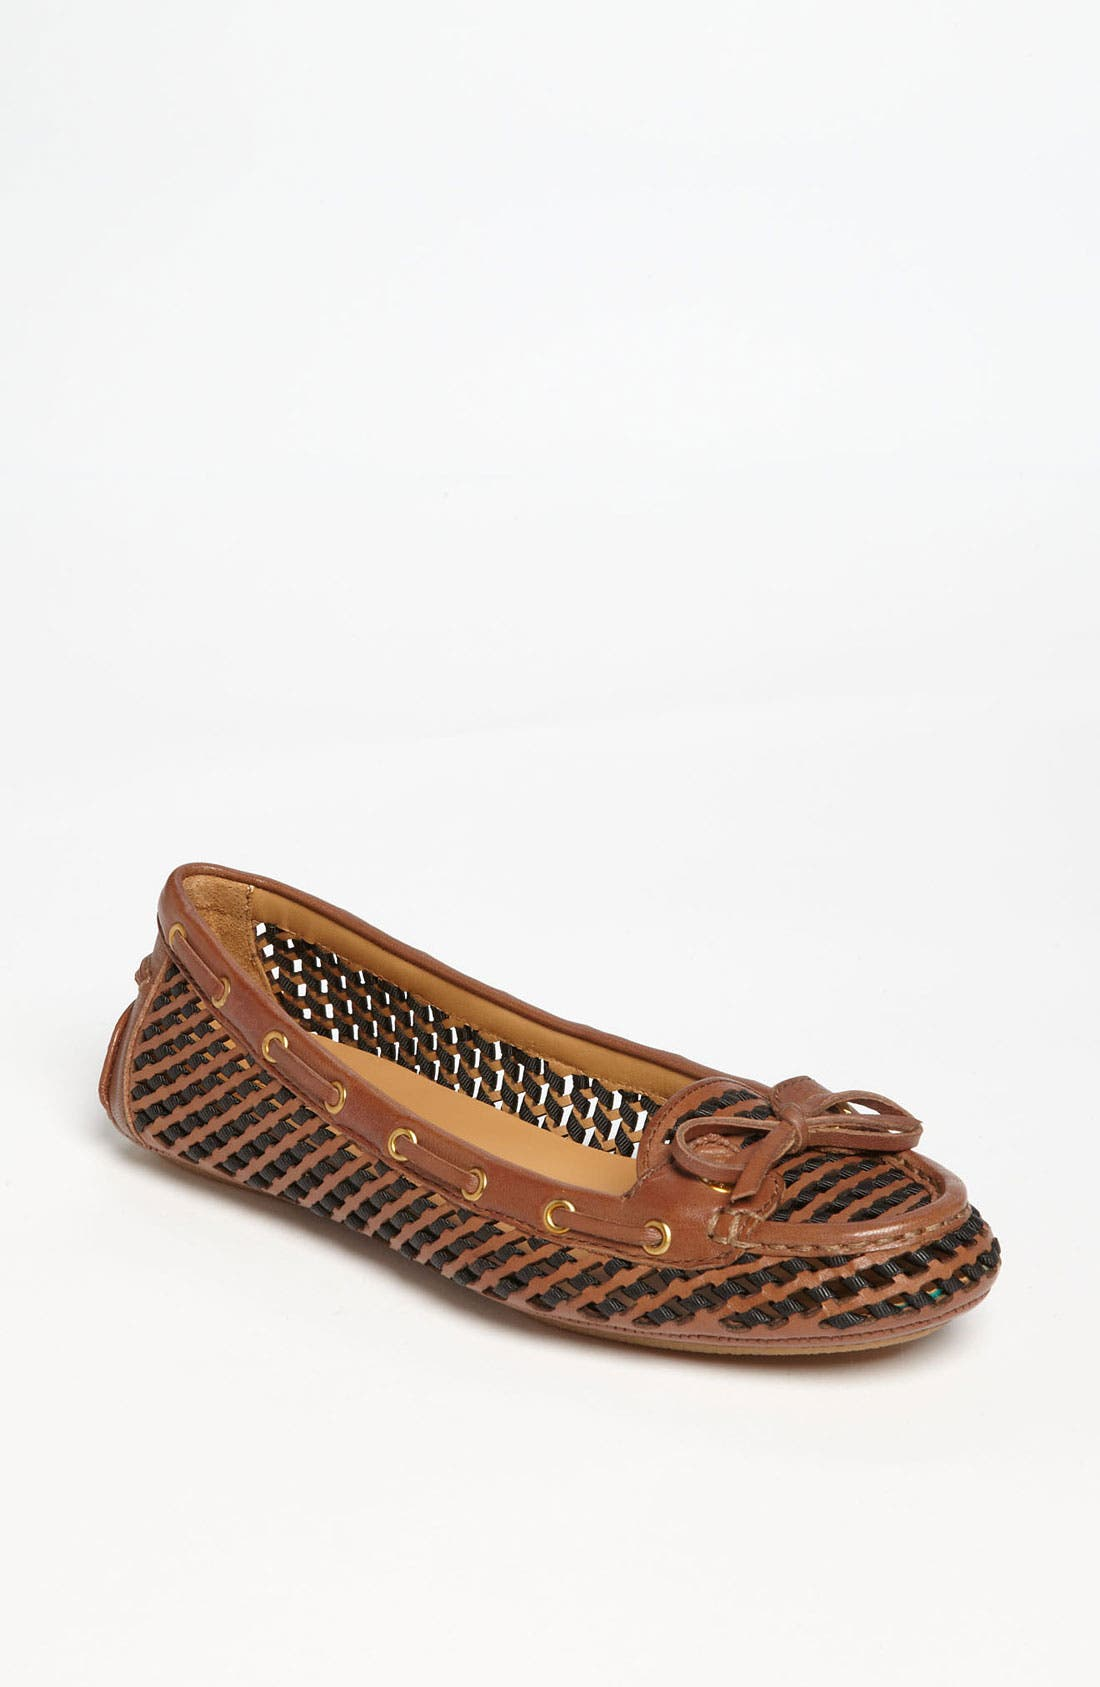 Alternate Image 1 Selected - Aerin 'Santa Cruz' Loafer